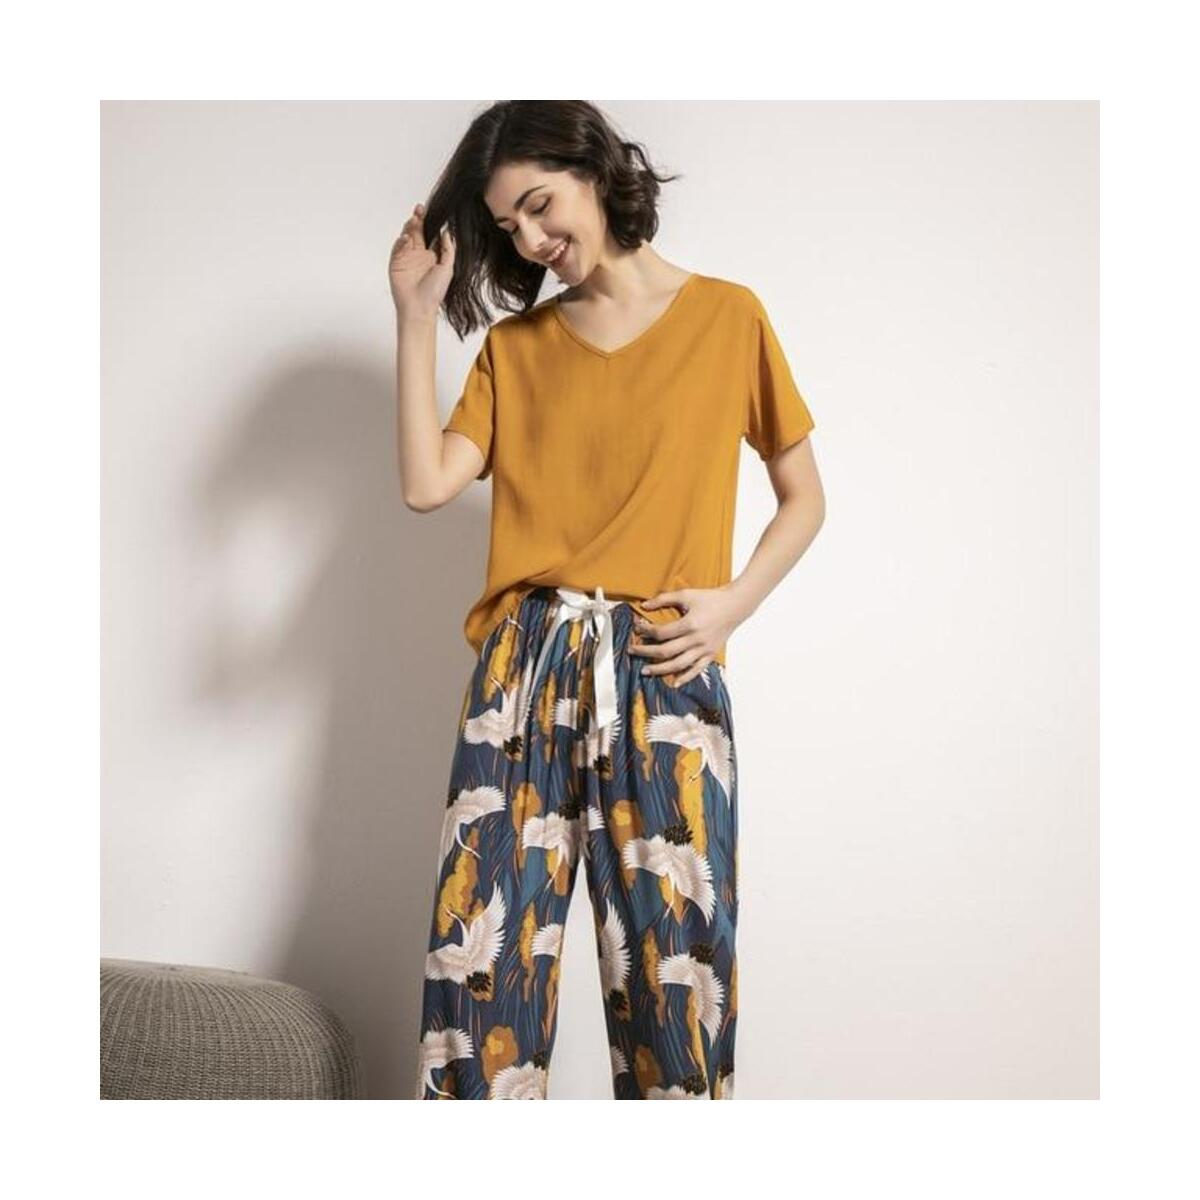 Short Sleeve Tops with Long Trousers Pajamas Set